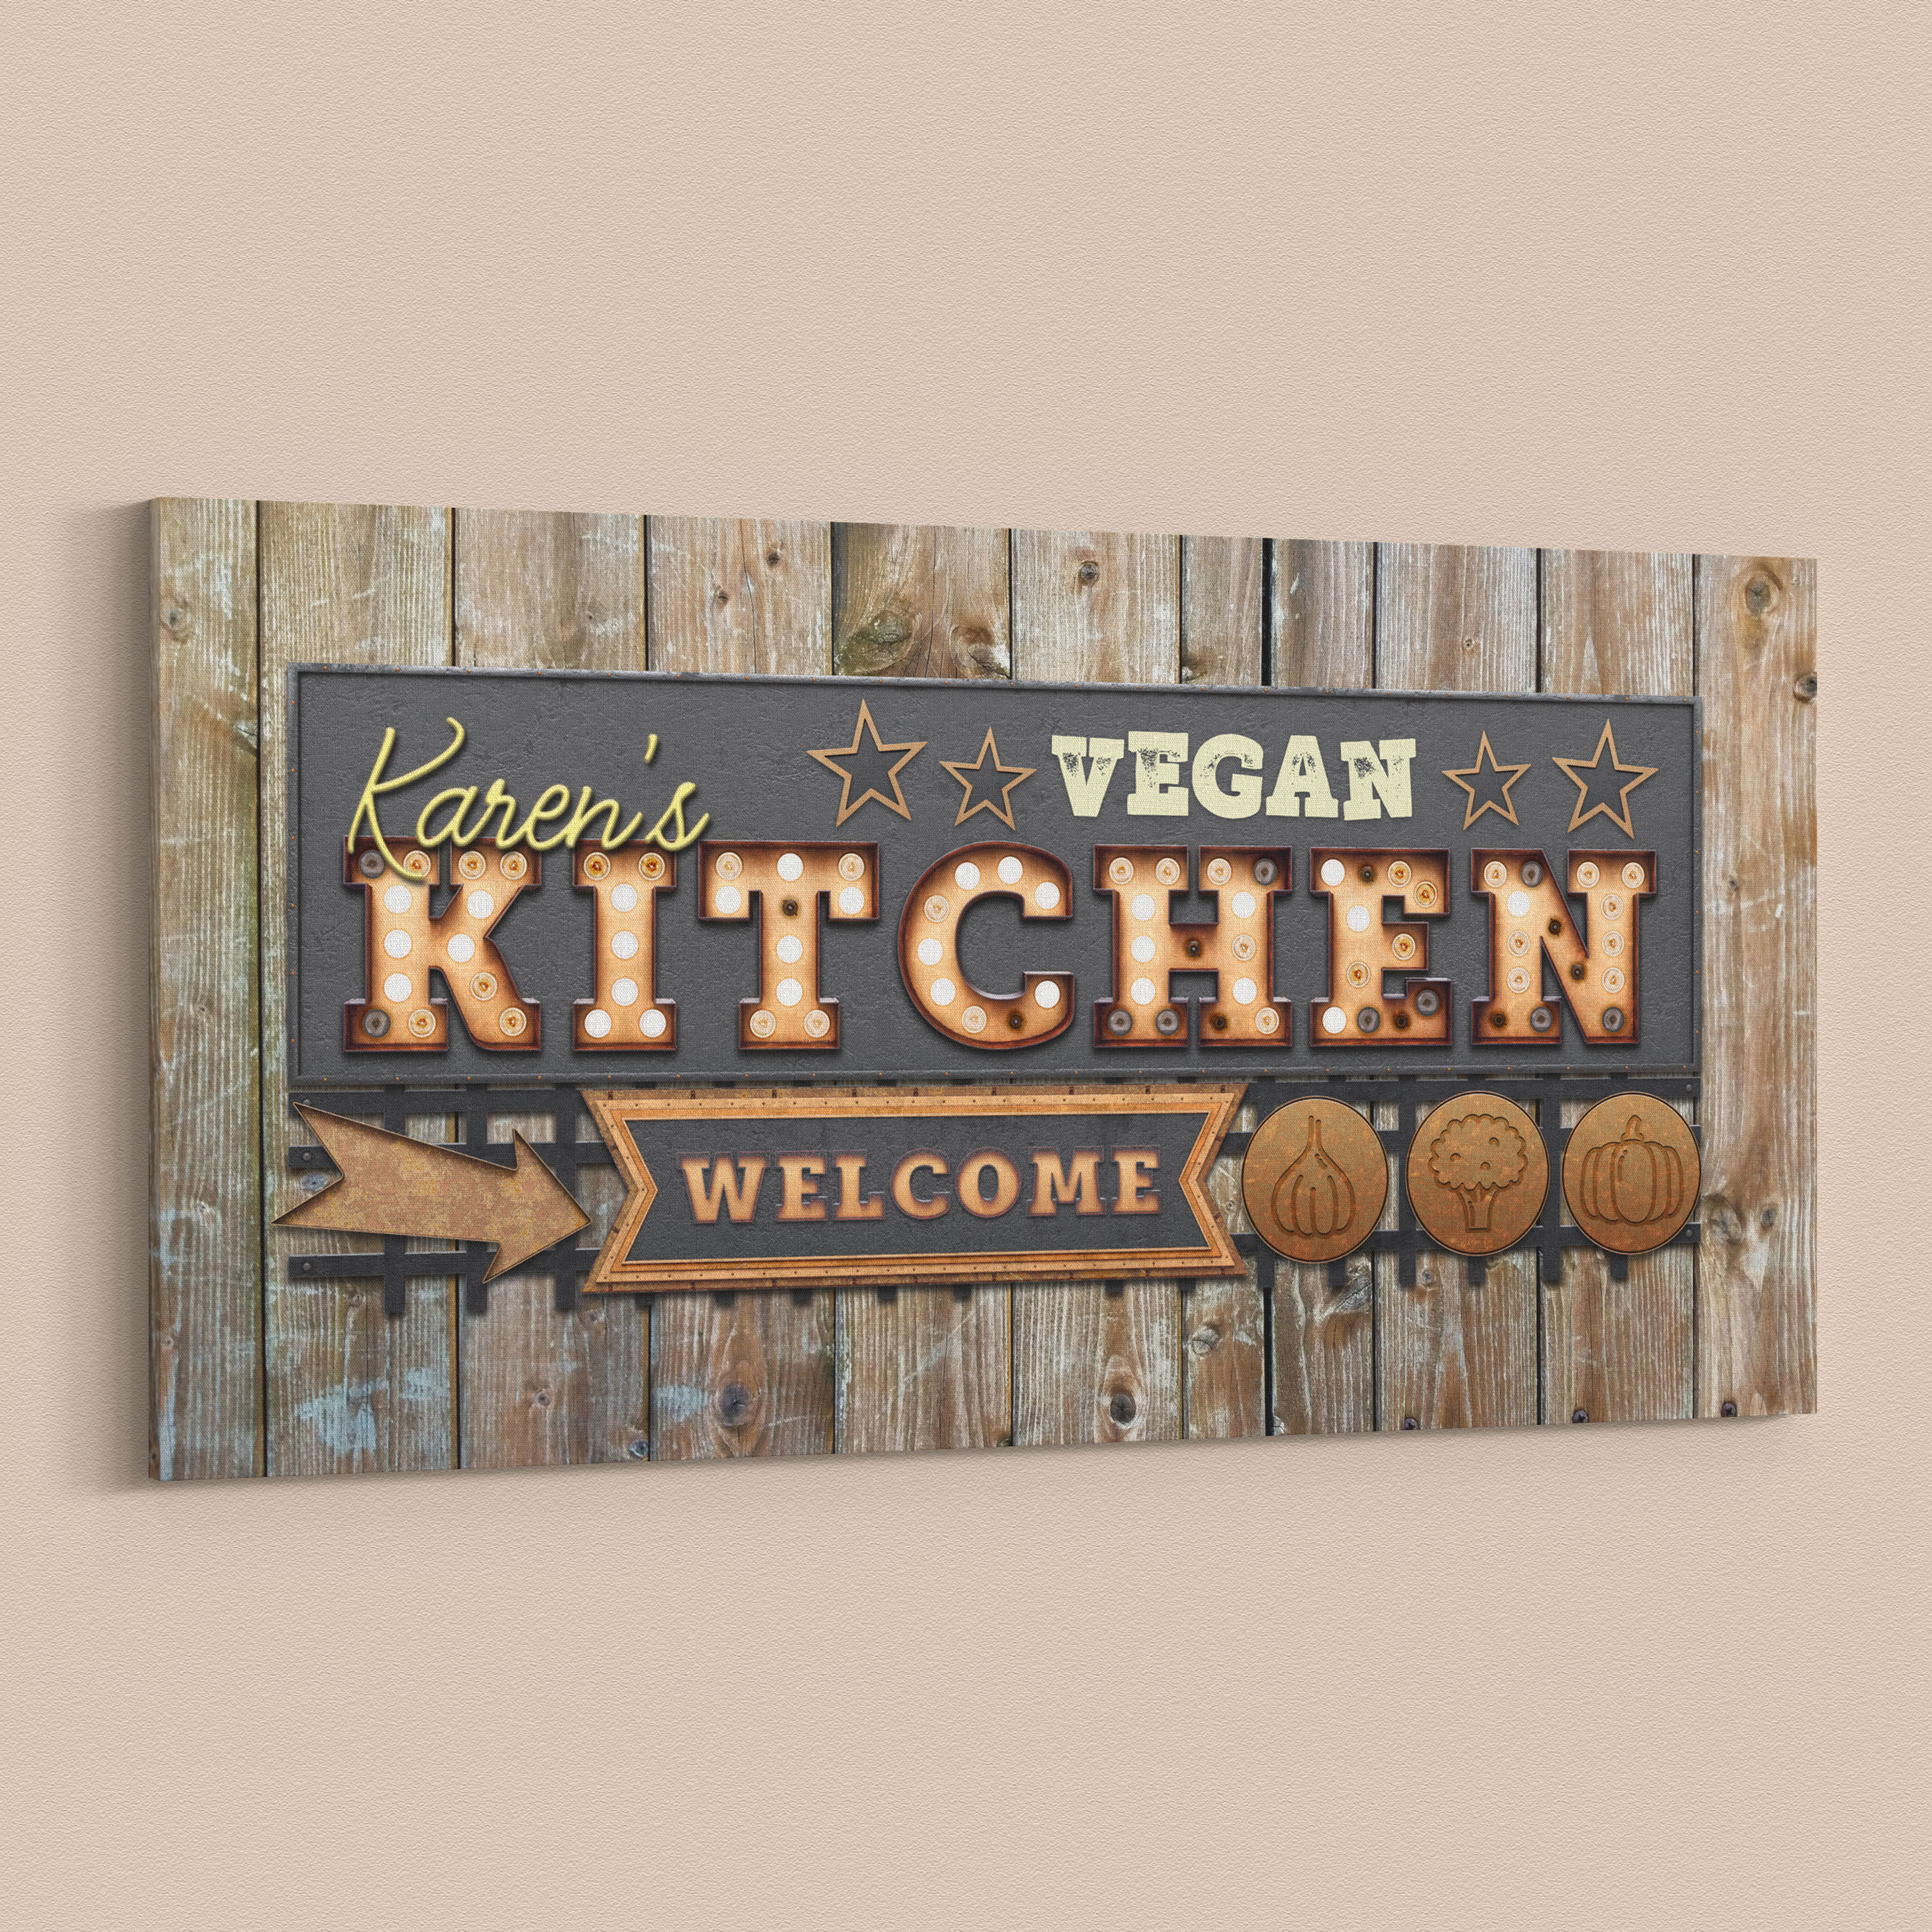 Vintage Style Personalised Vegan Kitchen Canvas Wall Art With Regard To Personalized Distressed Vintage Look Kitchen Metal Sign Wall Decor (View 10 of 30)